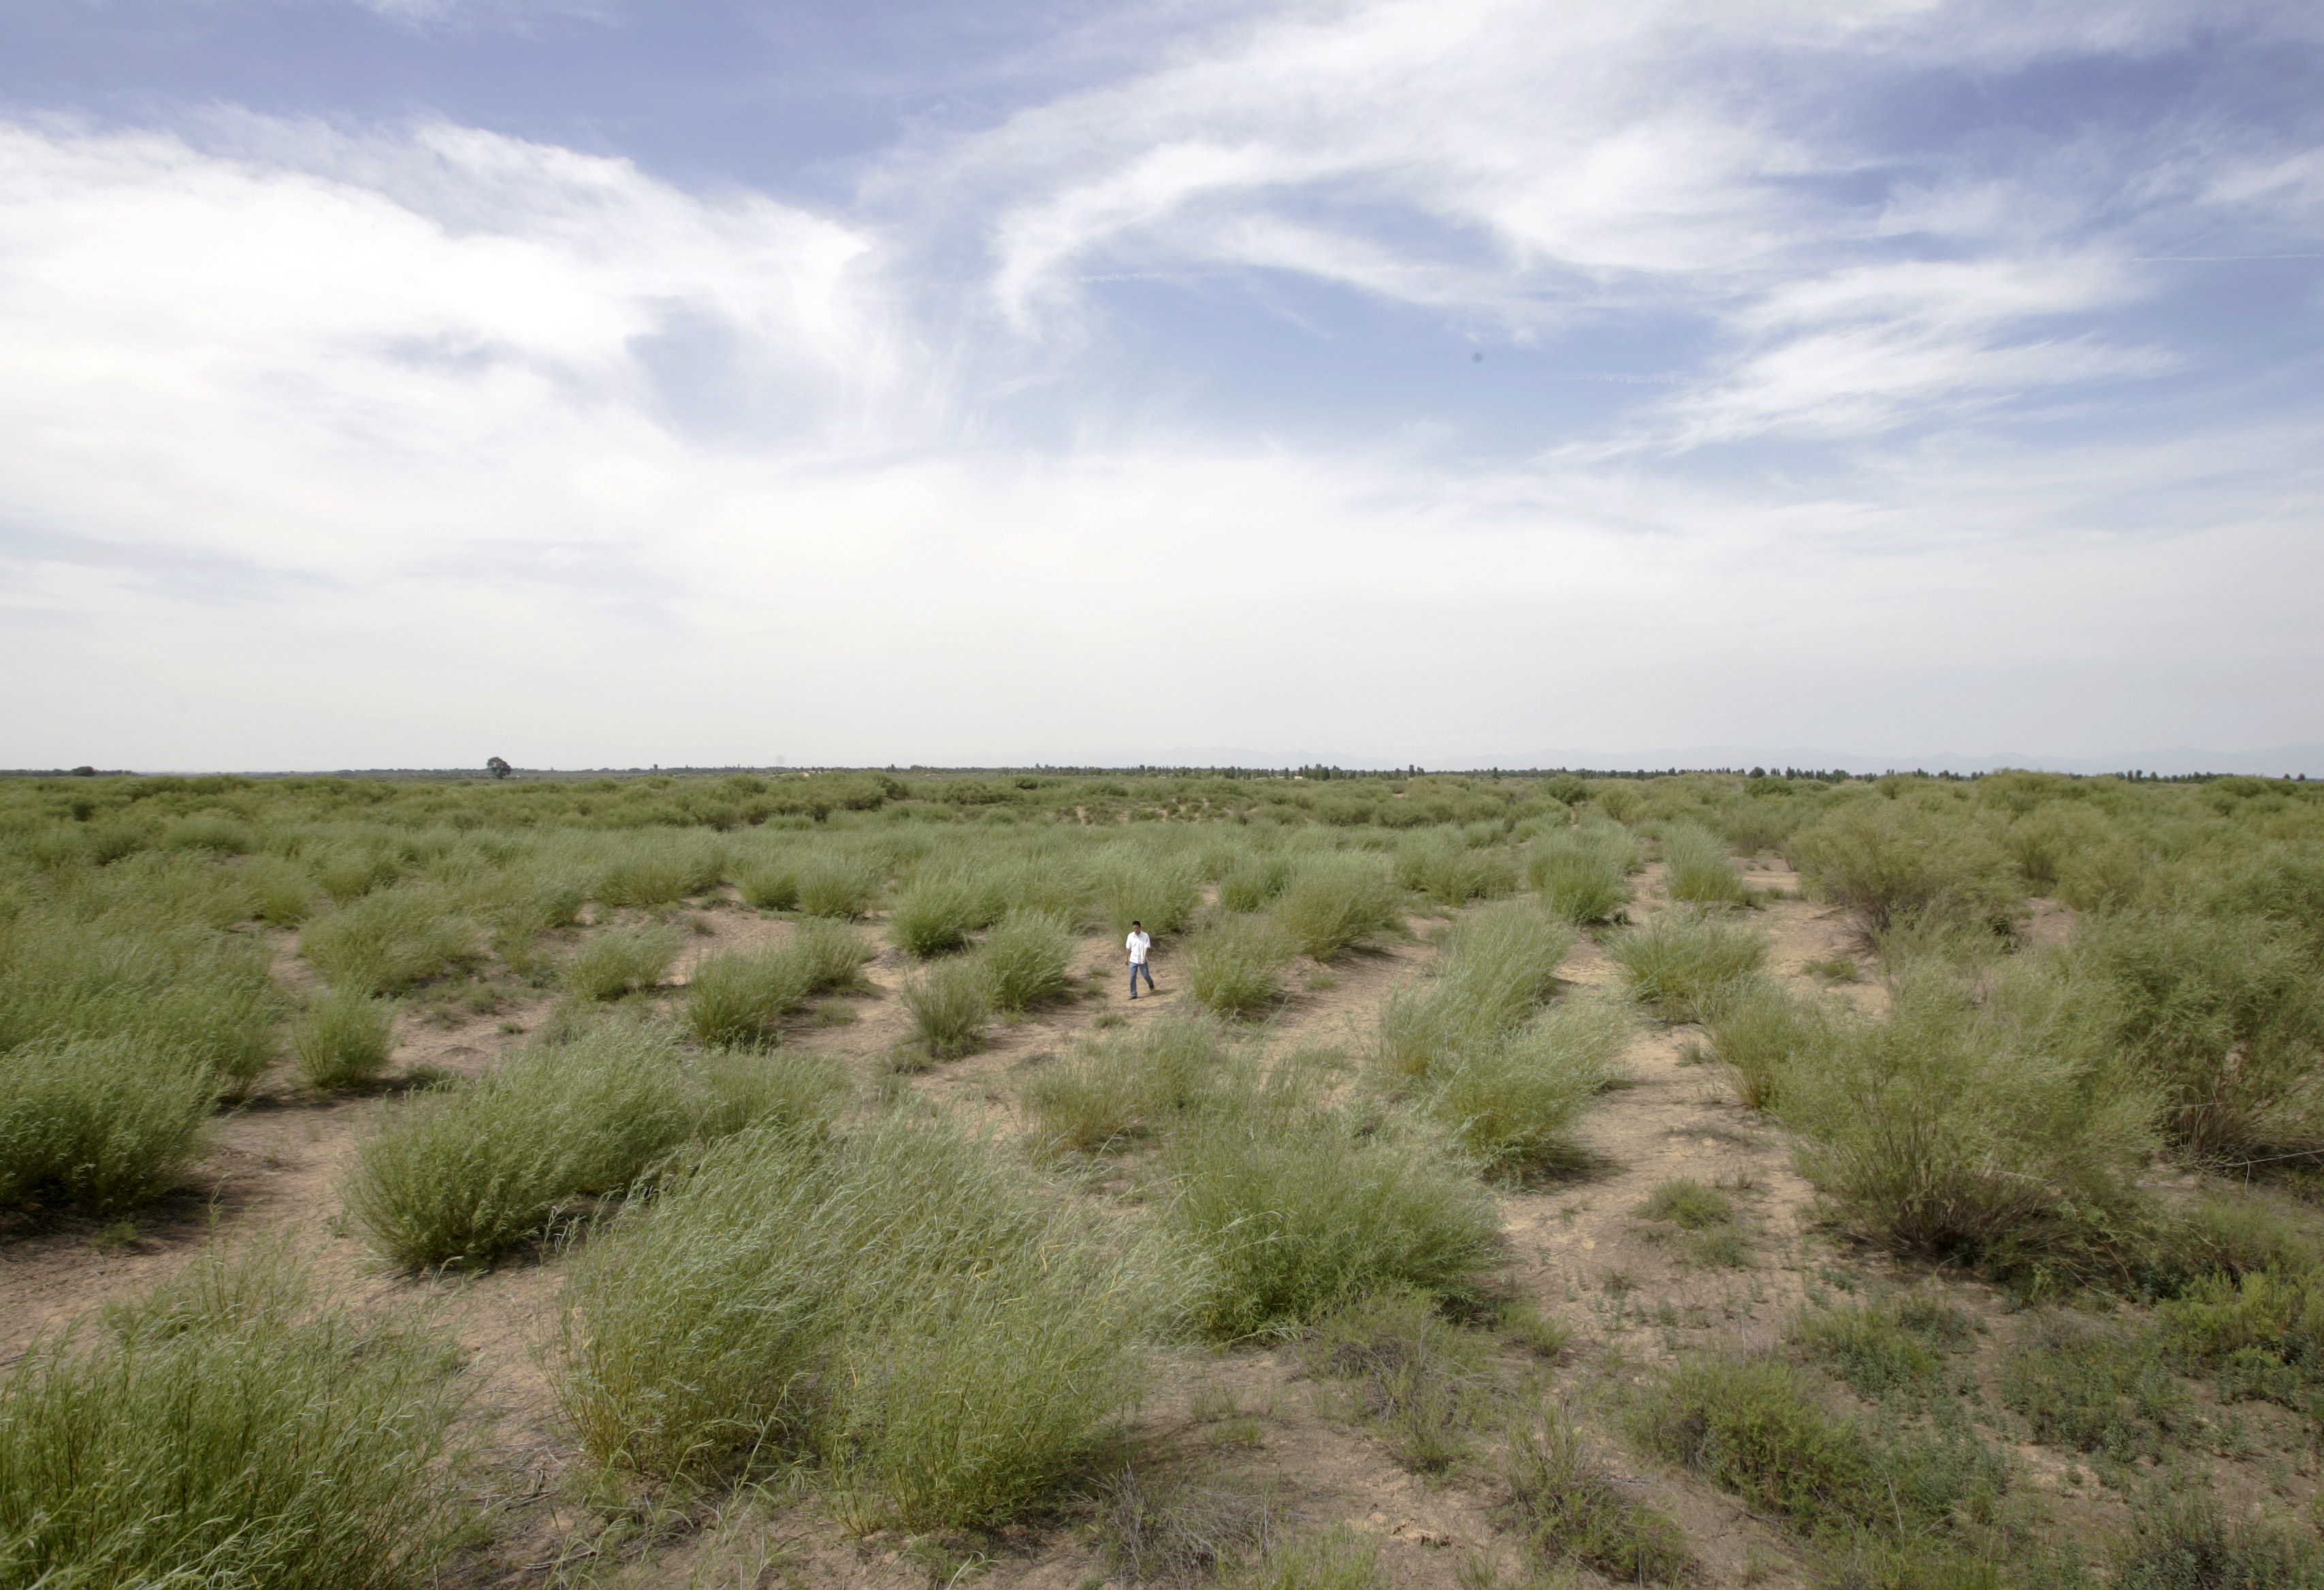 A file photo shows the transformation of the Kubuqi Desert on the outskirts of Dalate county in north China's Inner Mongolia Autonomous Region on July 11, 2007.